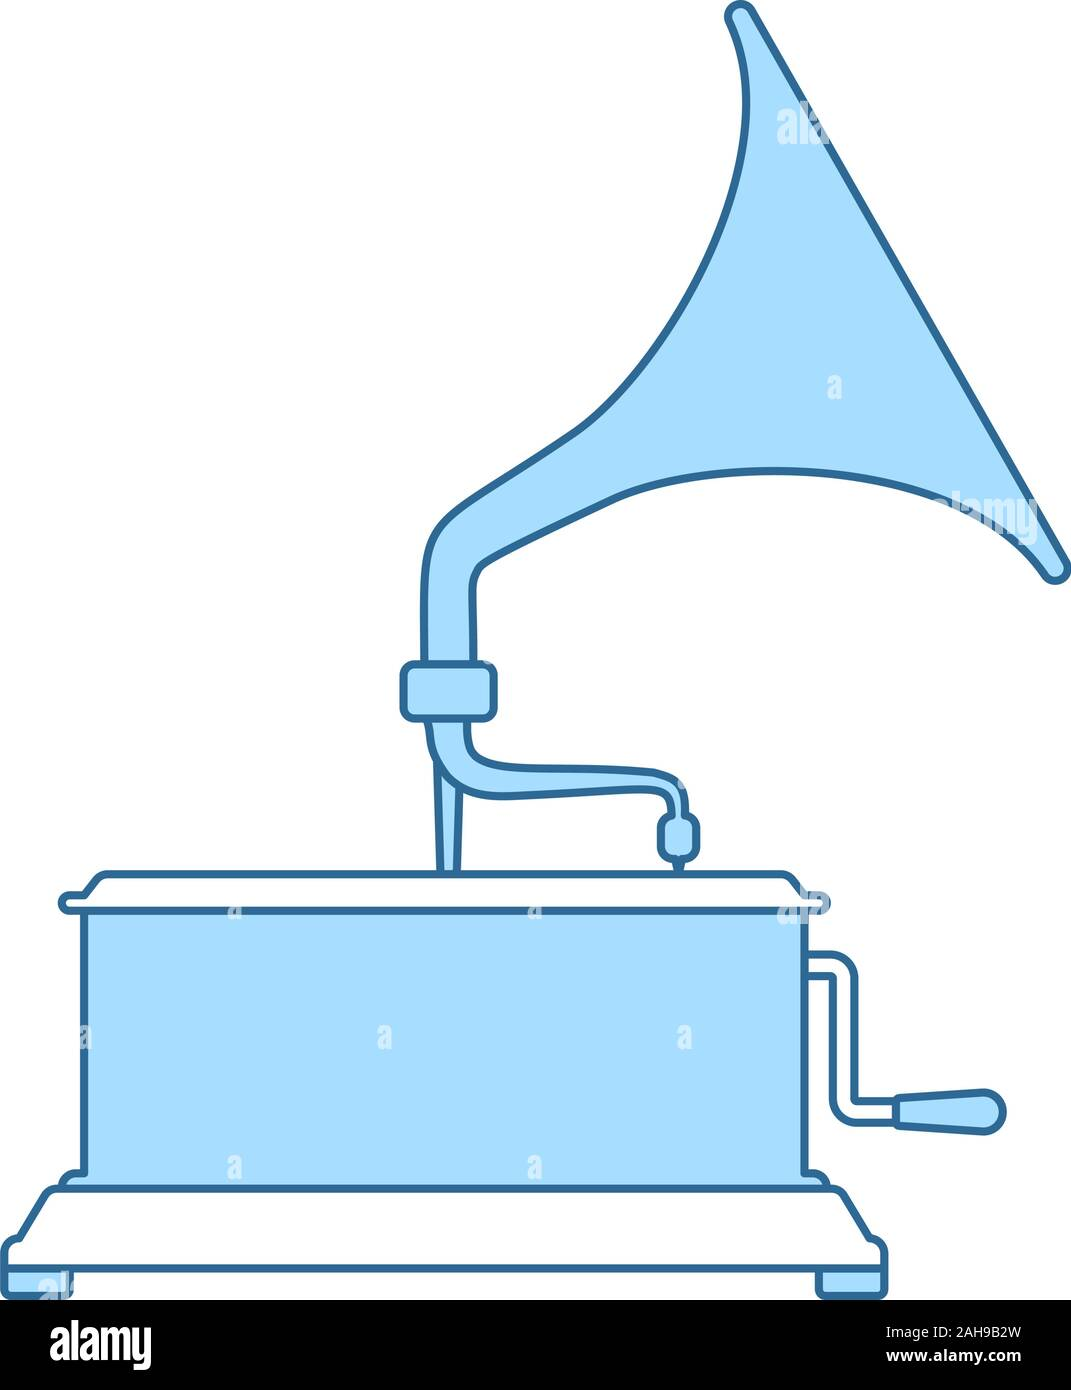 Download Vector Gramophone Icon